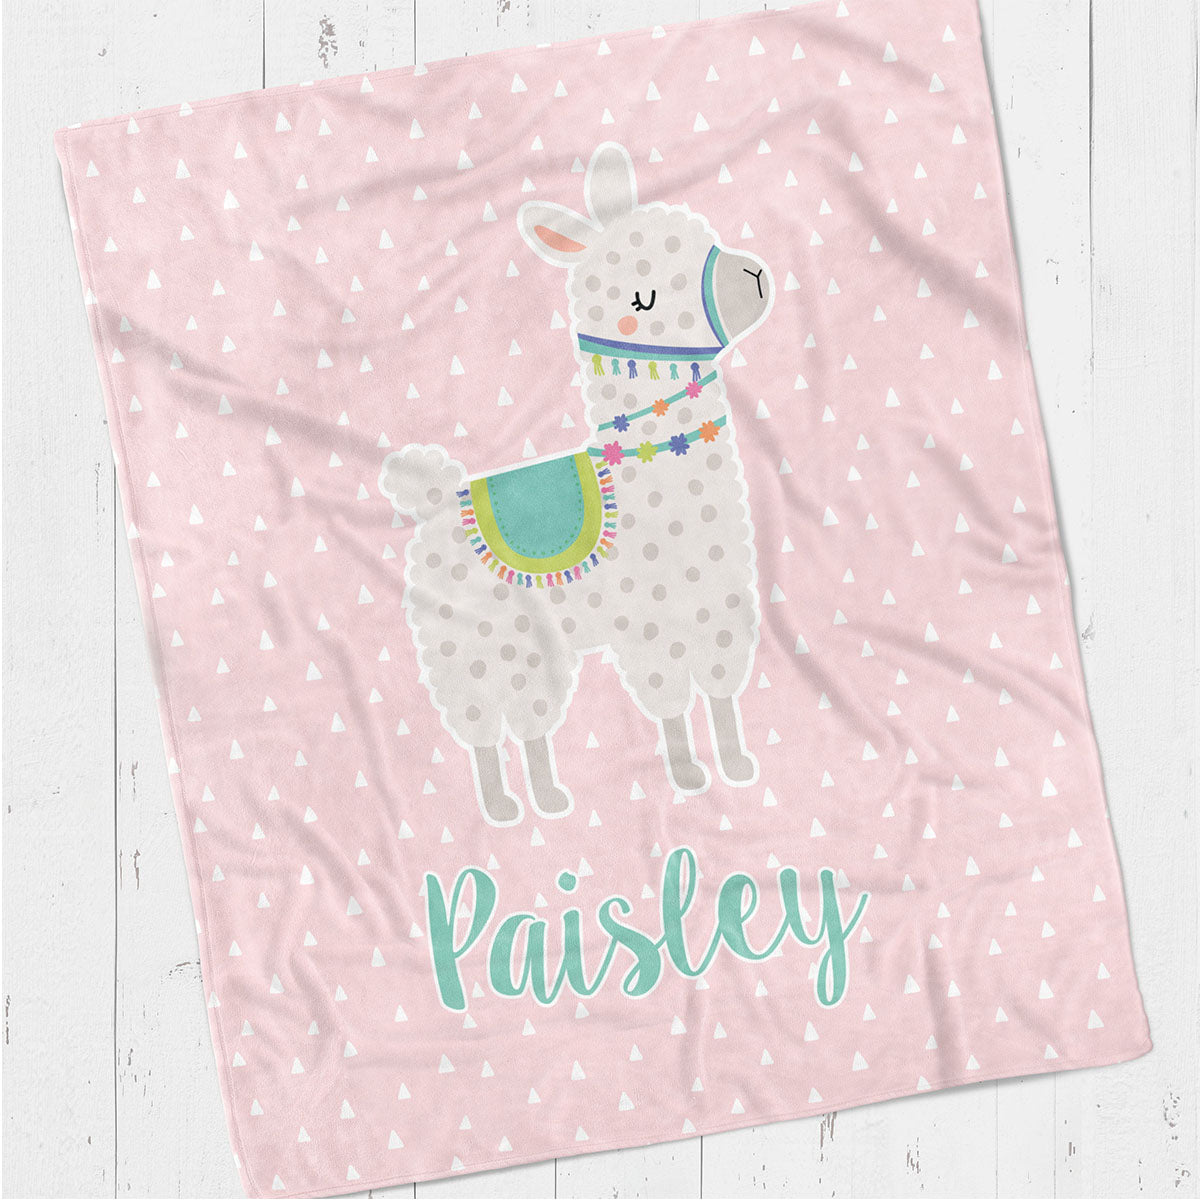 Personalized kids blanket, Pink llama (KB115-PINK)